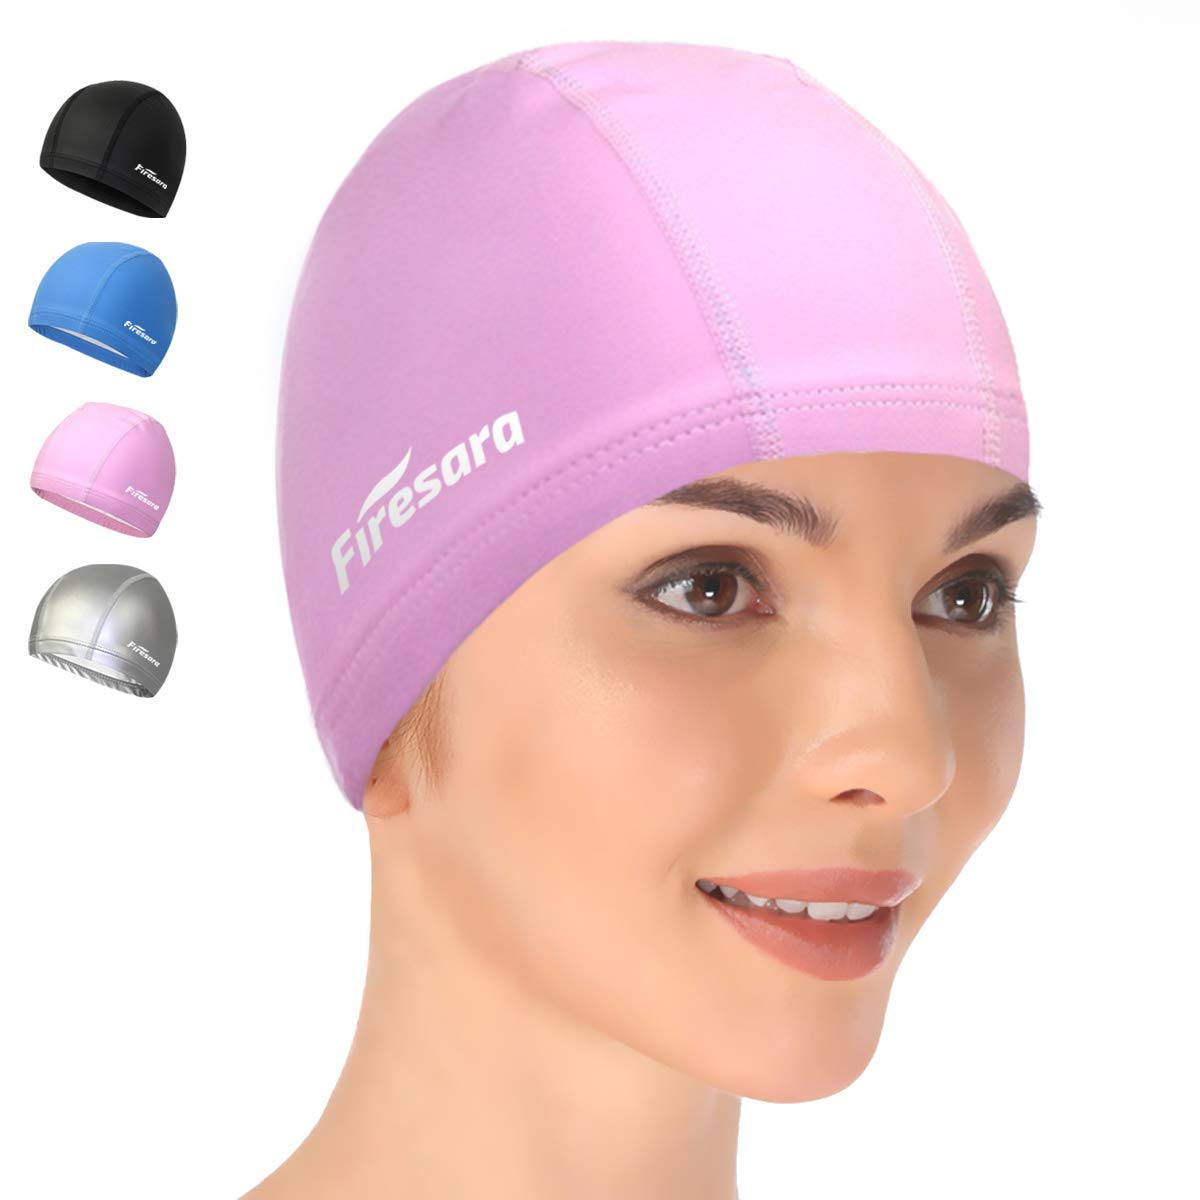 BOSUE SLLXG Swimming Cap 2 Pack Swim Caps Waterproof Unisex Premium Silicone No-Slip Swimming Hat for Adults Kids Woman and Men One Size Hat,Comfortable Fit for Long Hair and Short Hair